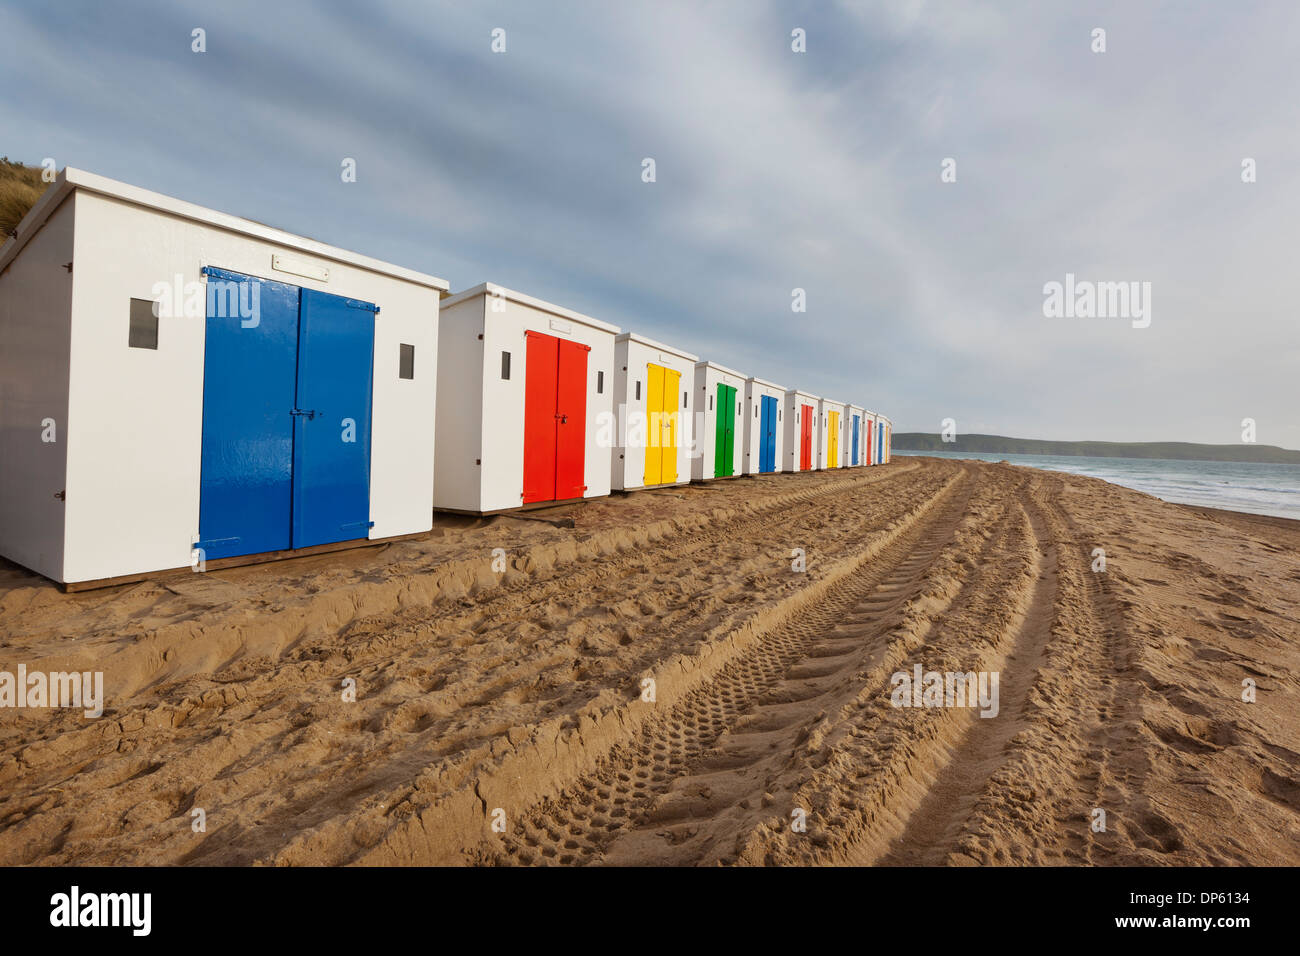 Beach huts in a row on Woolacombe Sands in North Devon, UK. - Stock Image